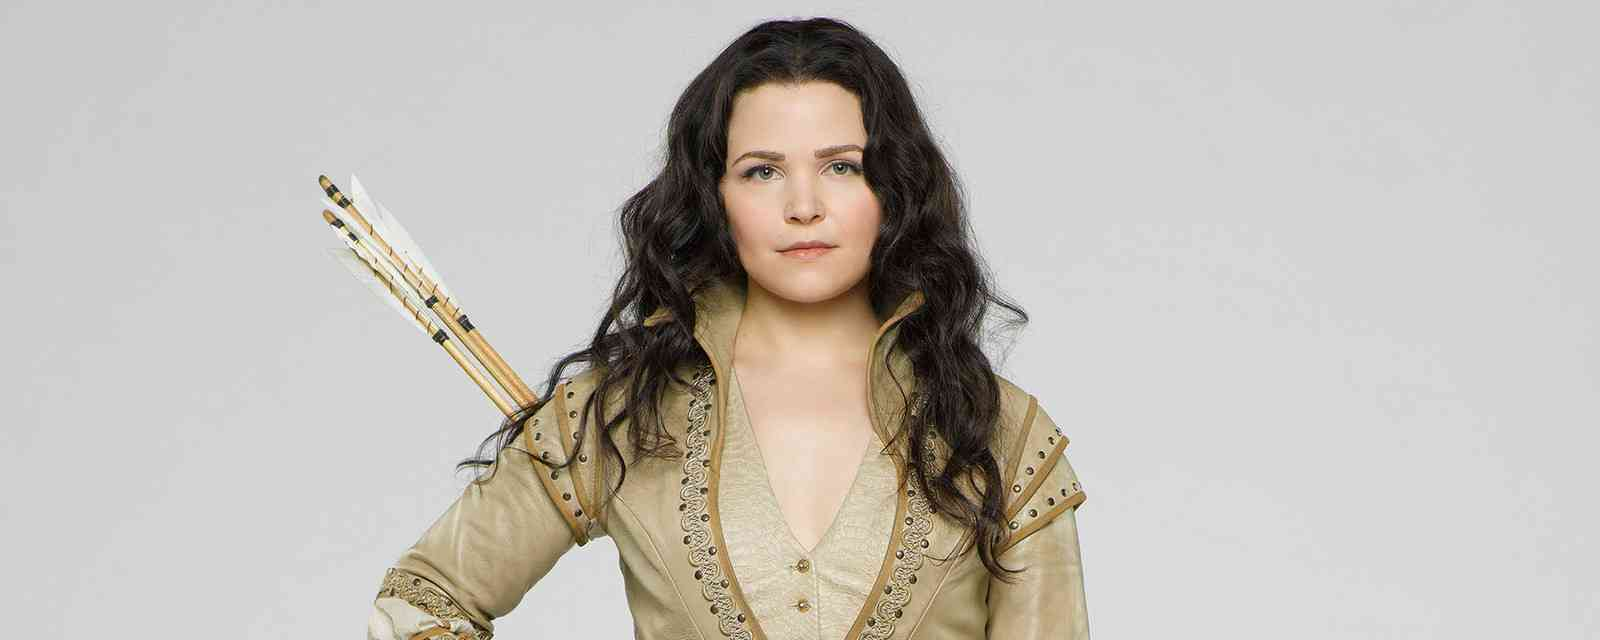 Ginnifer Goodwin is Snow White in Once Upon a Time via Disney